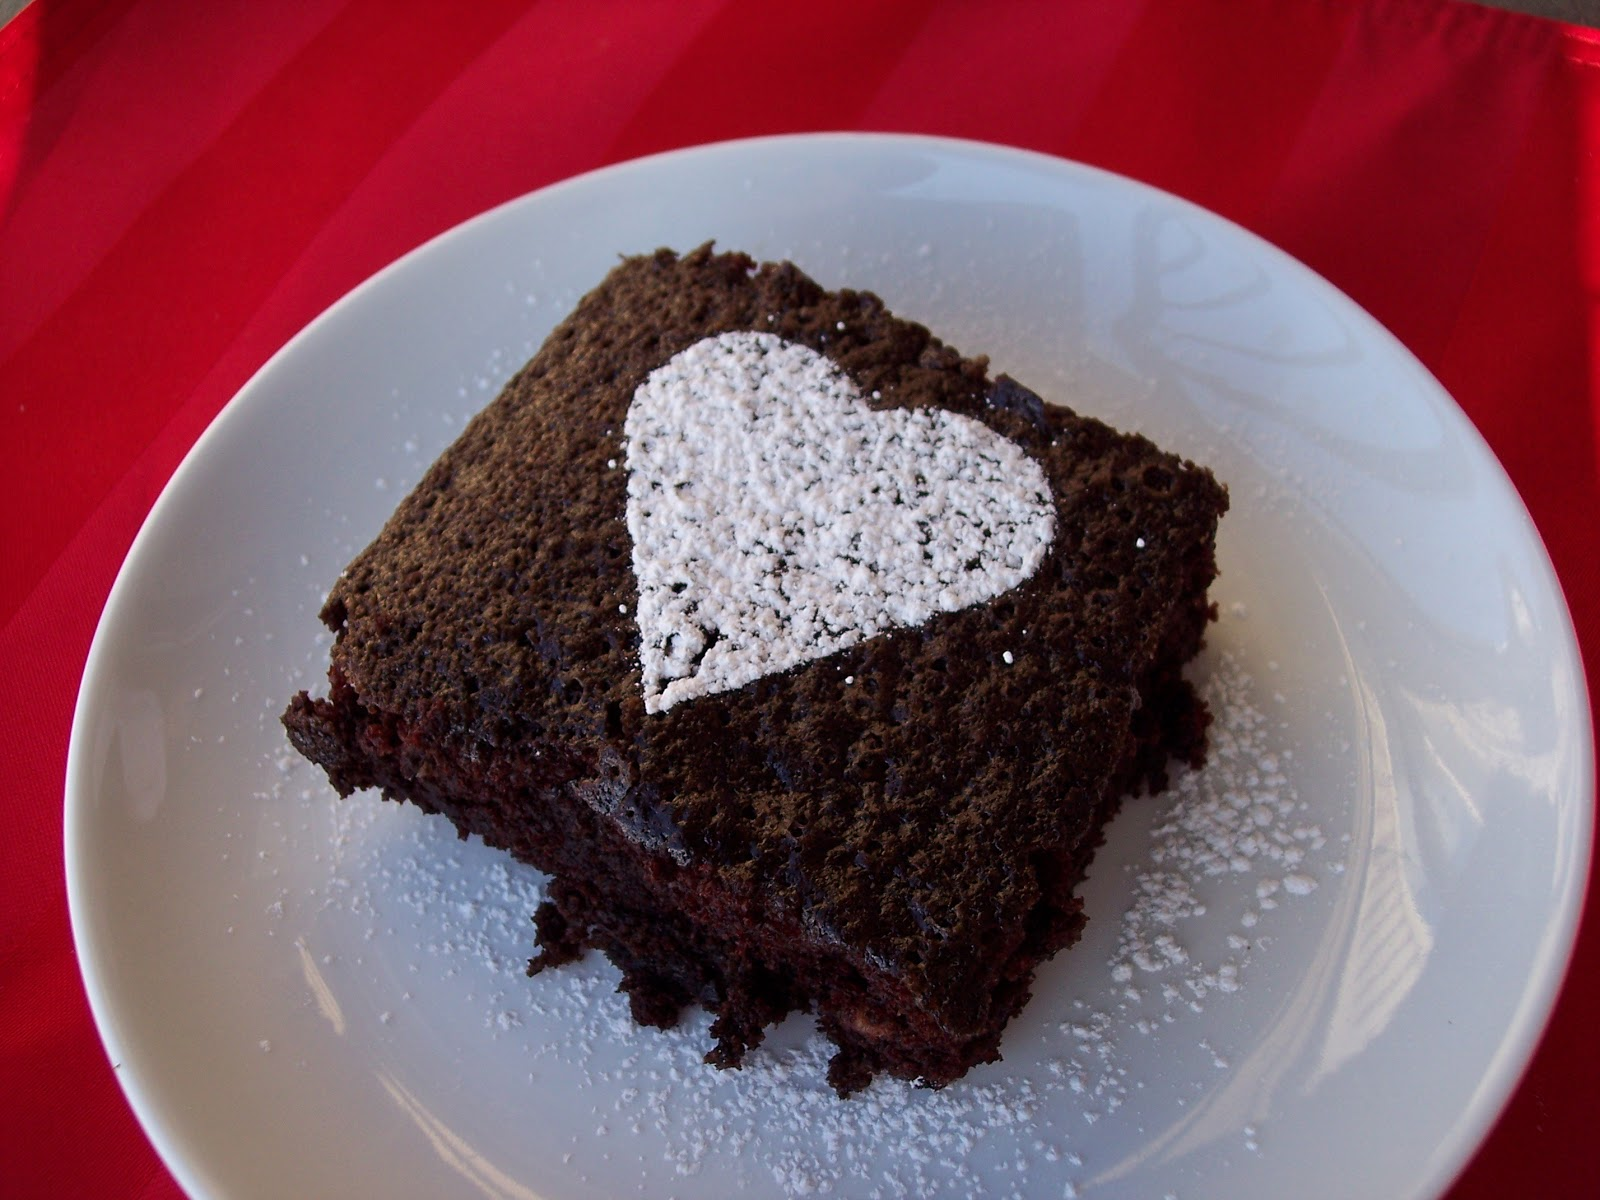 Cake In A Mug Recipes No Egg: In The Kitchen With Honeyville: No-Egg Chocolate Cake Recipe